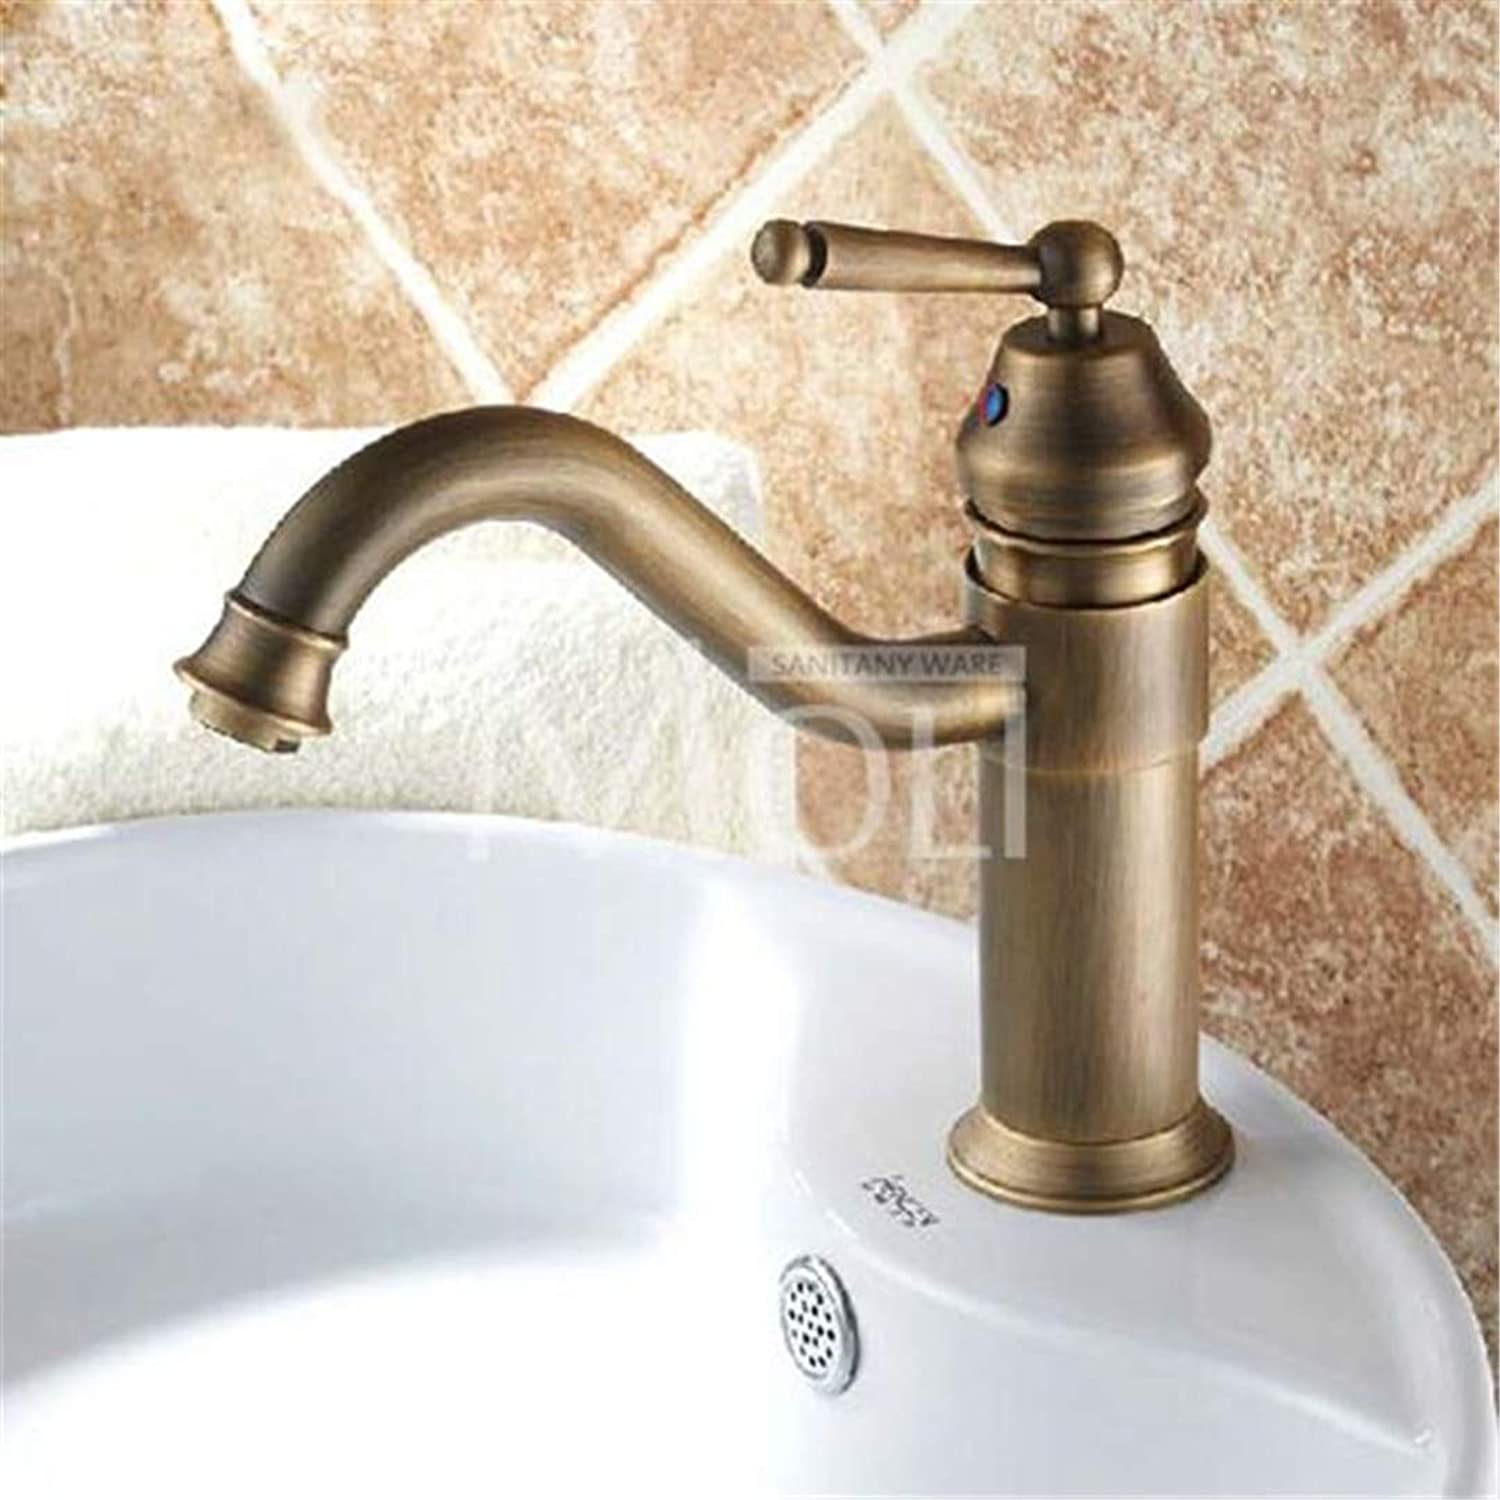 S-Senrohy Vintage Style Antique Faucet Tall Bathroom Faucets Brass Finish Washbasin Hot Cold Washbasin Bath Mixer Tap 5008A